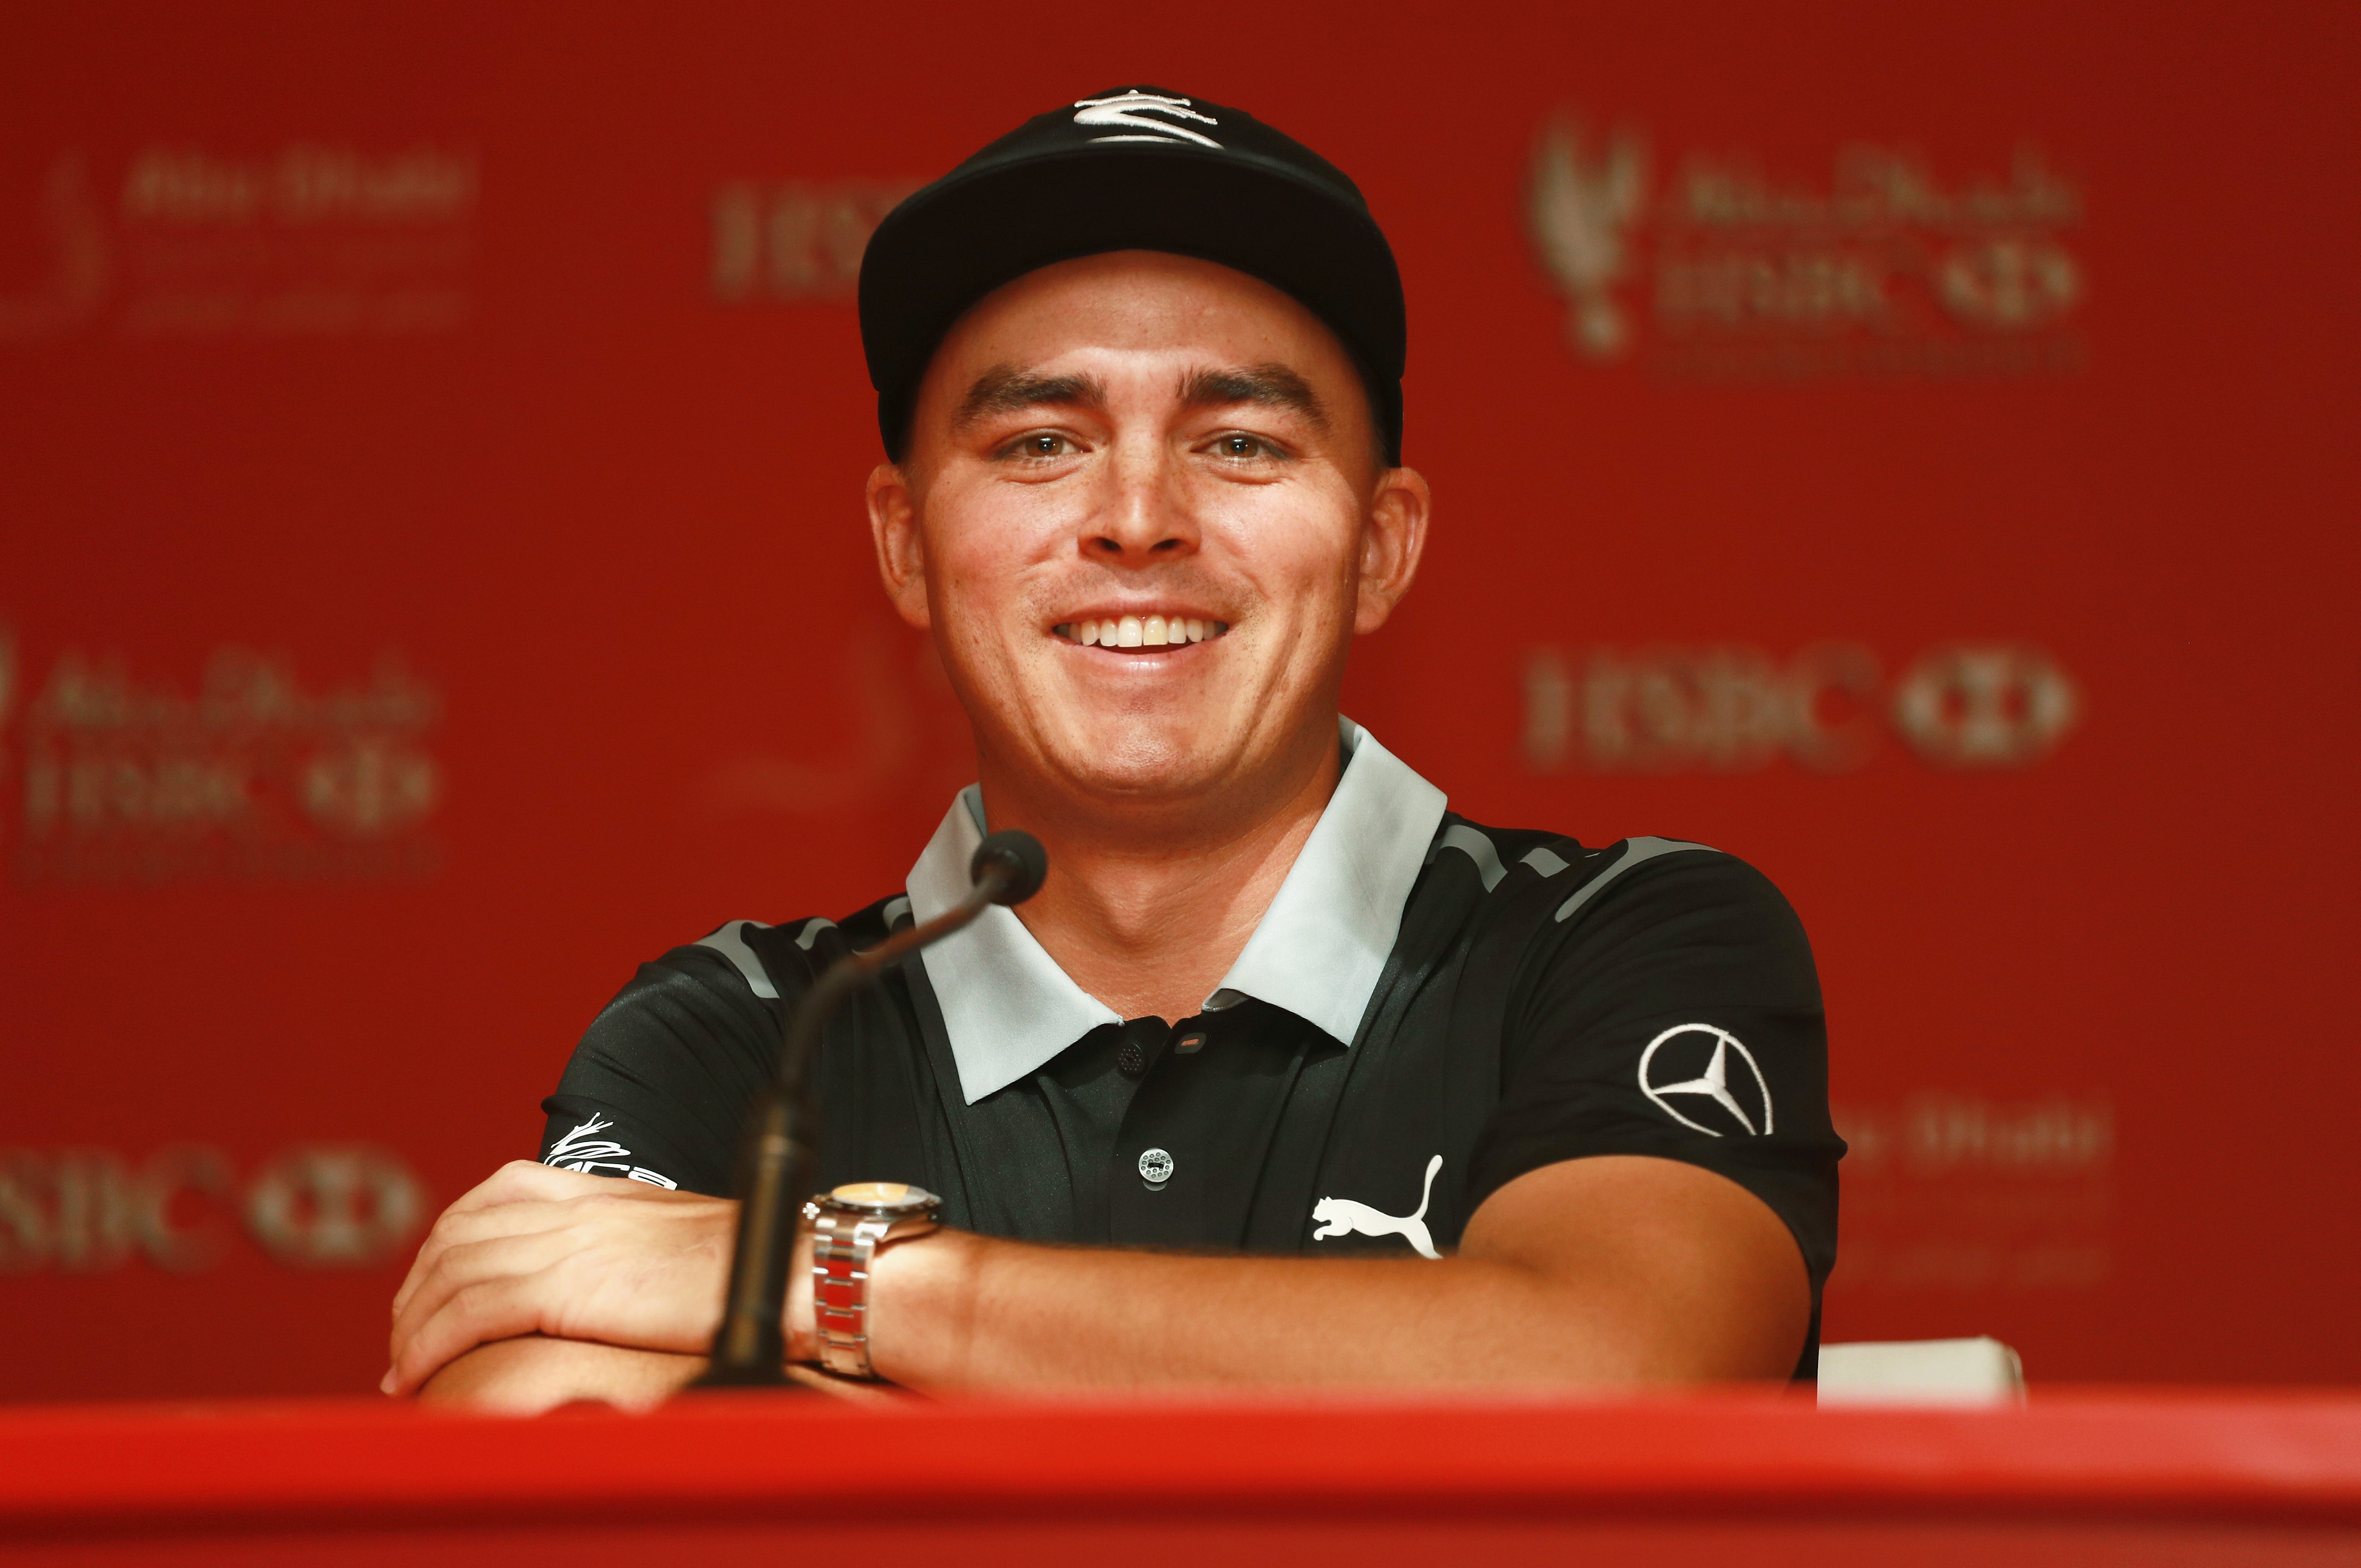 ABU DHABI, UNITED ARAB EMIRATES - JANUARY 17: Rickie Fowler of the United States speaks with the media prior to the start of the Abu Dhabi HSBC Championship at Abu Dhabi Golf Club on January 17, 2017 in Abu Dhabi, United Arab Emirates. (Photo by Scott Halleran/Getty Images)